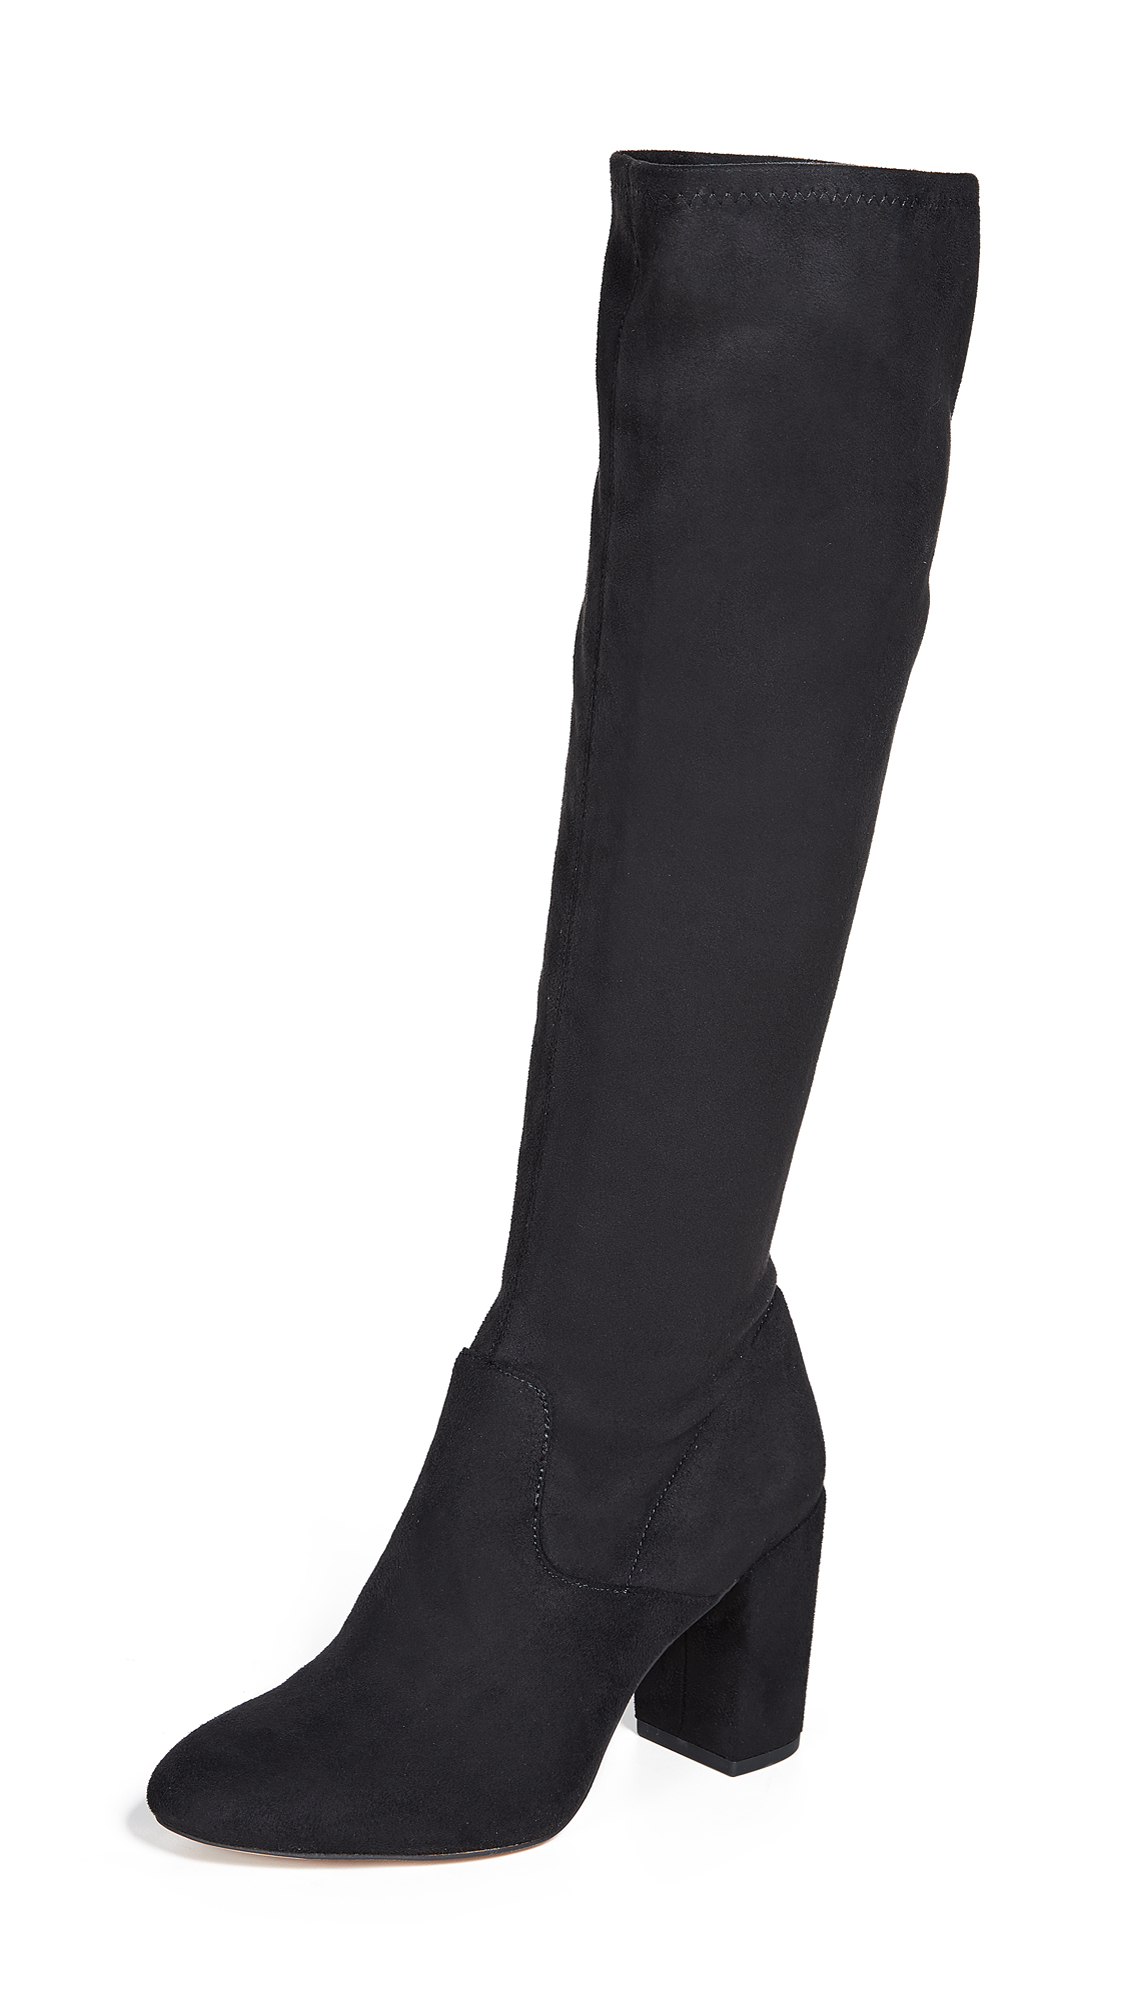 Rebecca Minkoff Gillian Tall Boots - Black